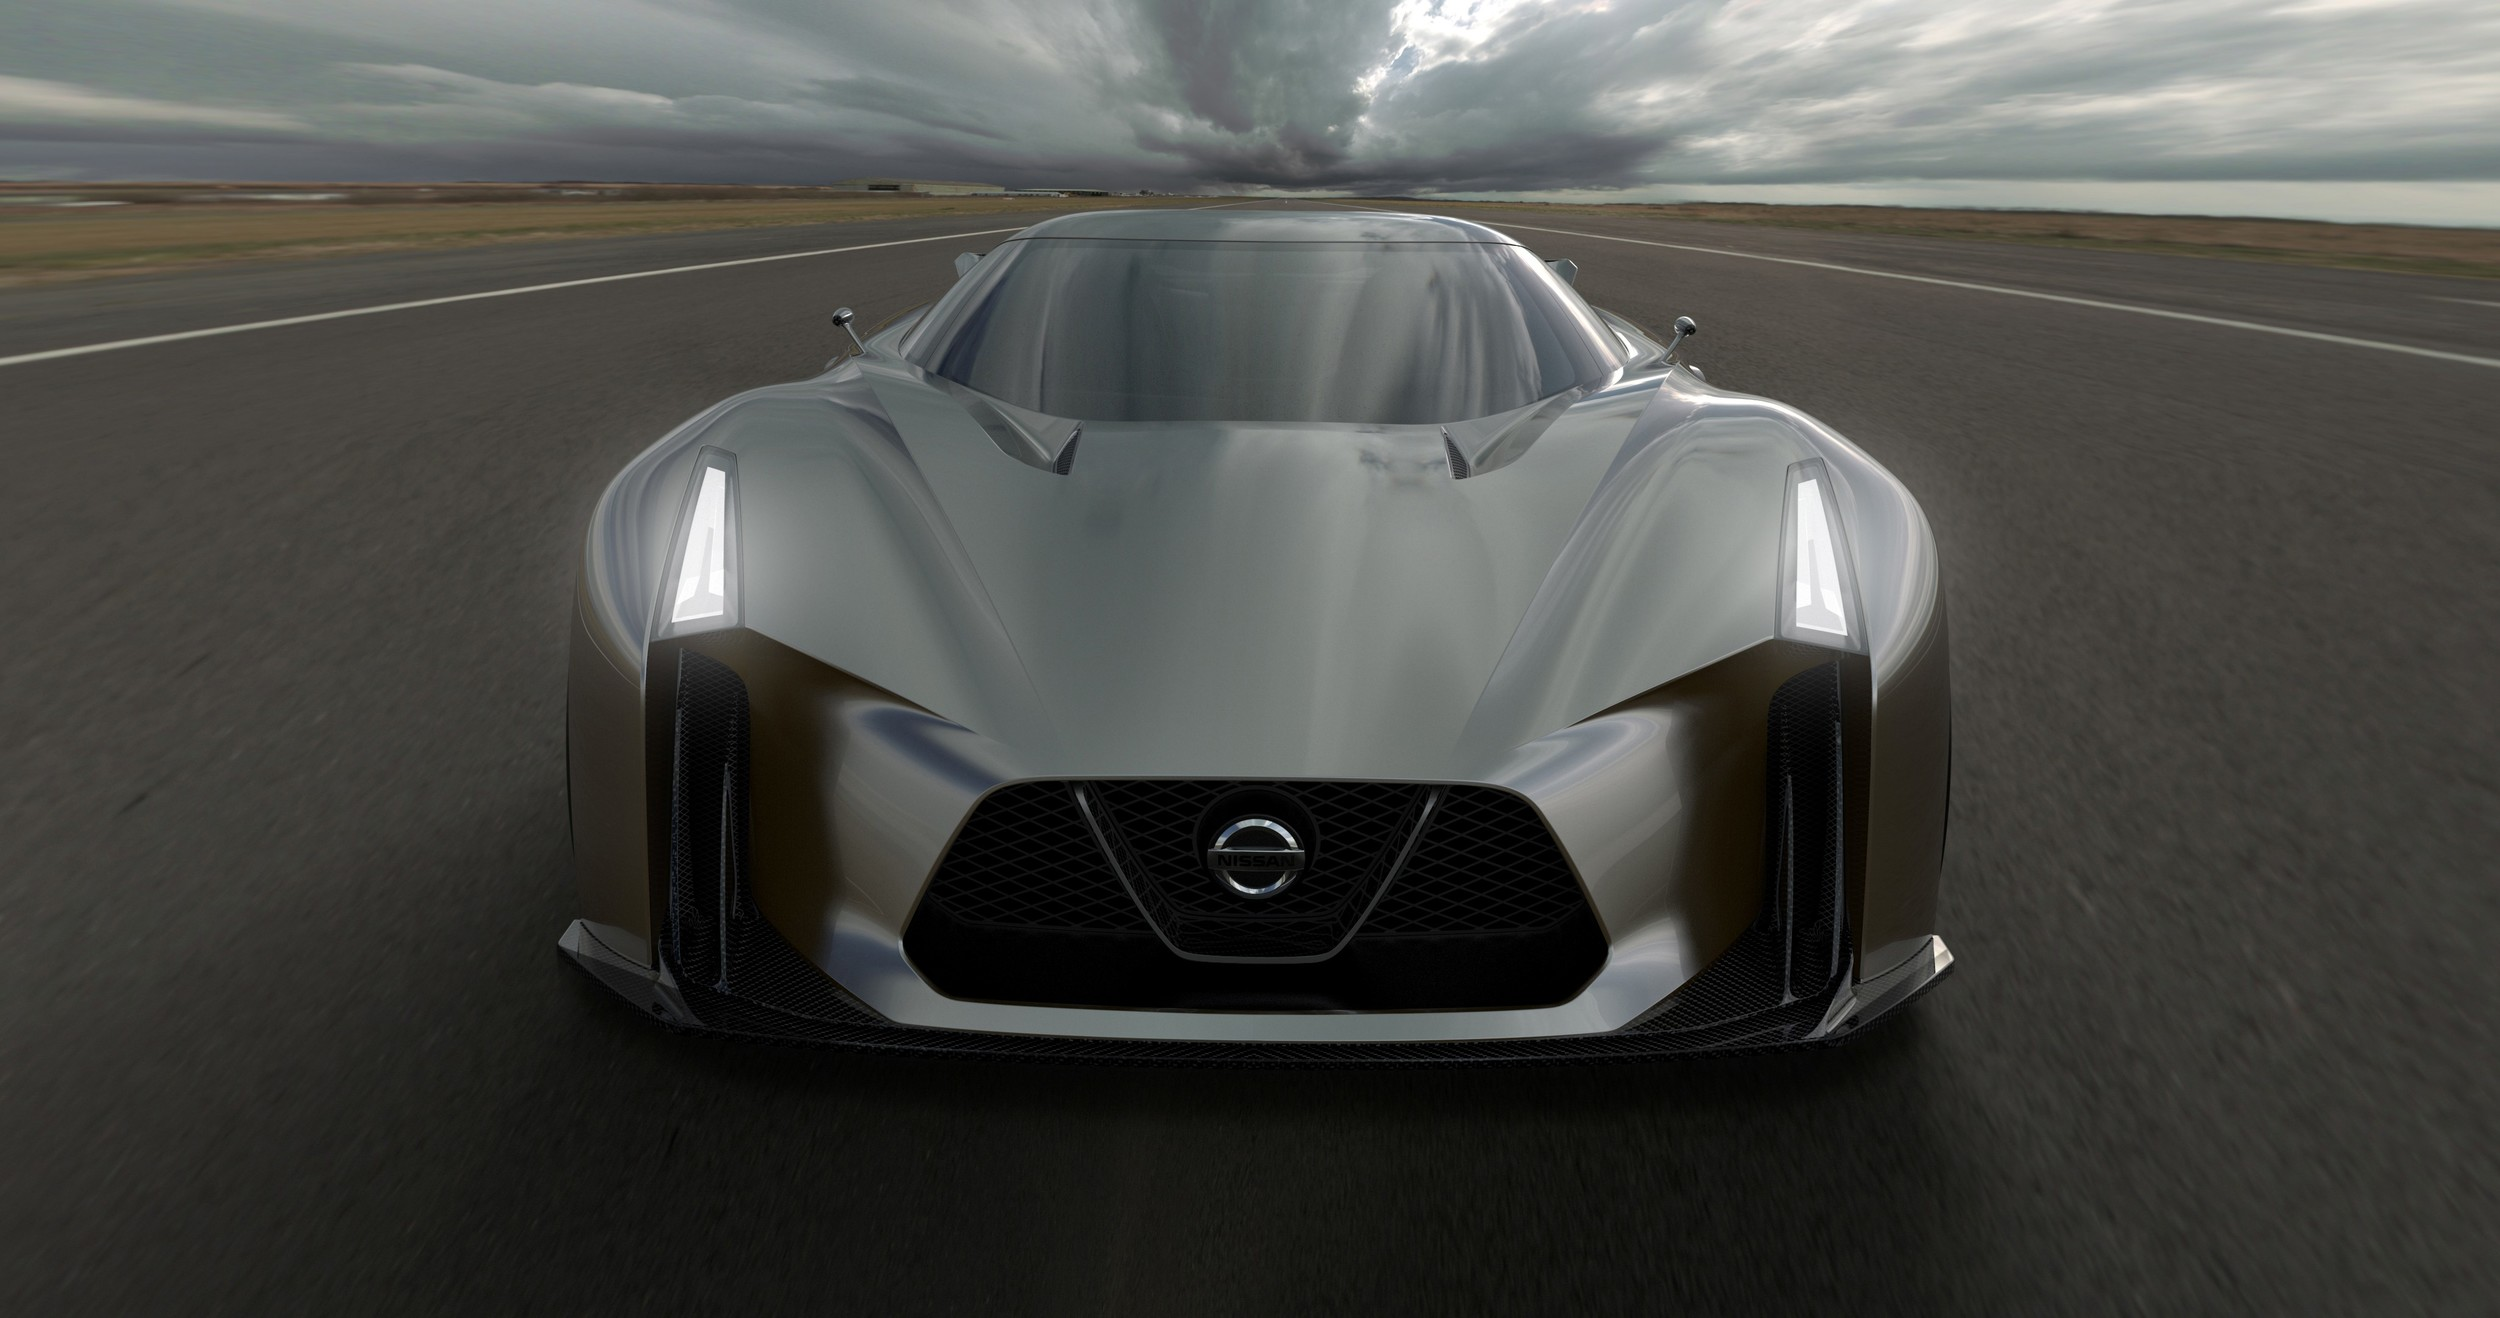 2014_Nissan_Concept_2020_Vision_Gran_Turismo_013_0023.jpg